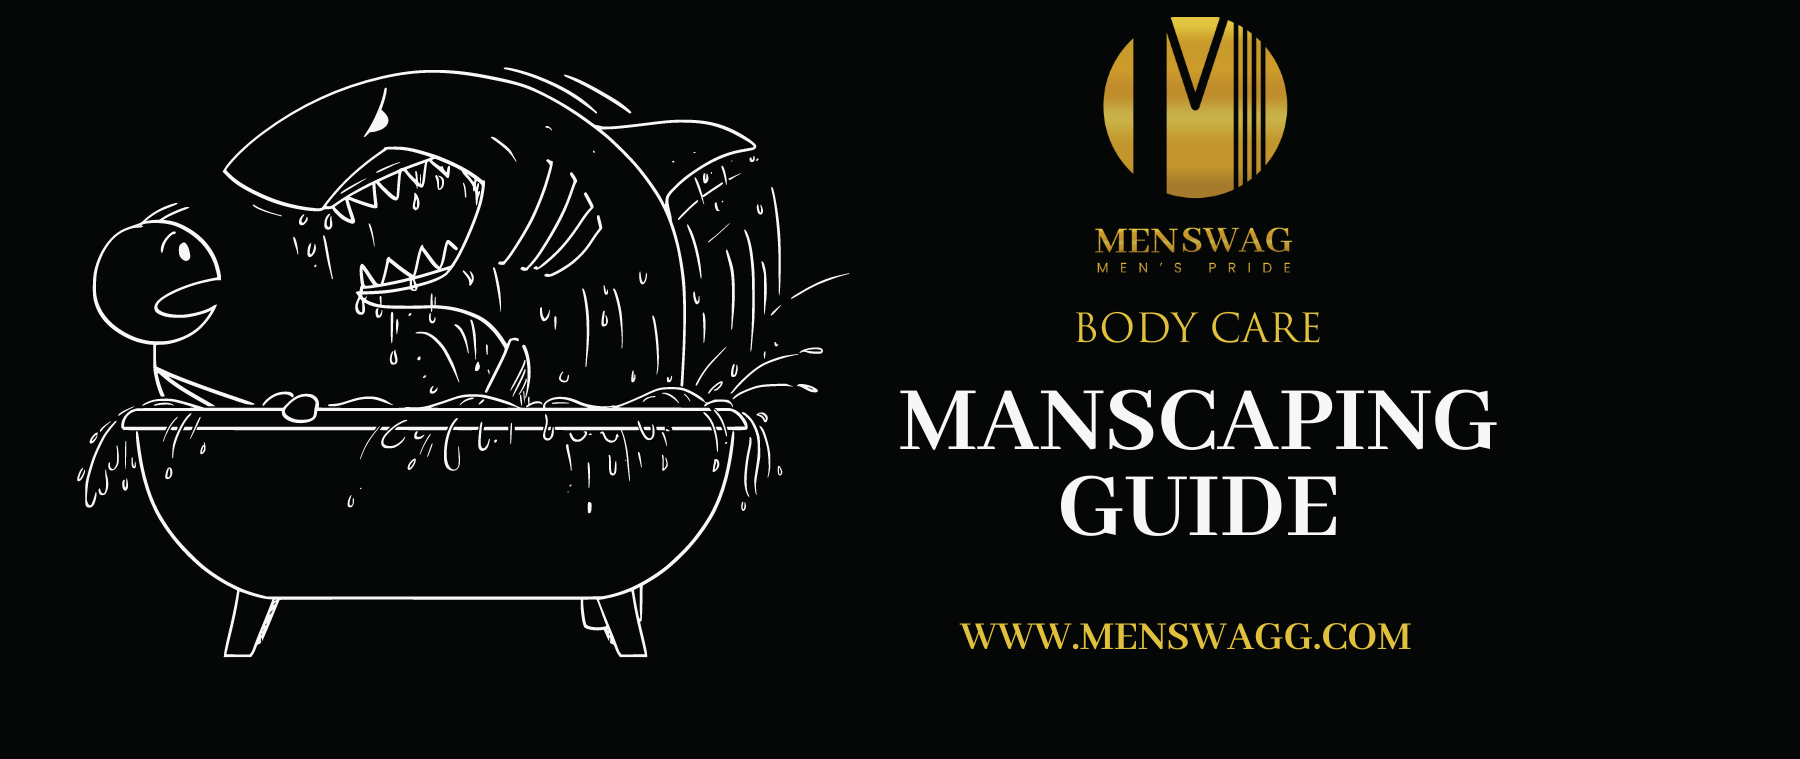 HOW TO MANSCAPE BODY GROOMING TIPS